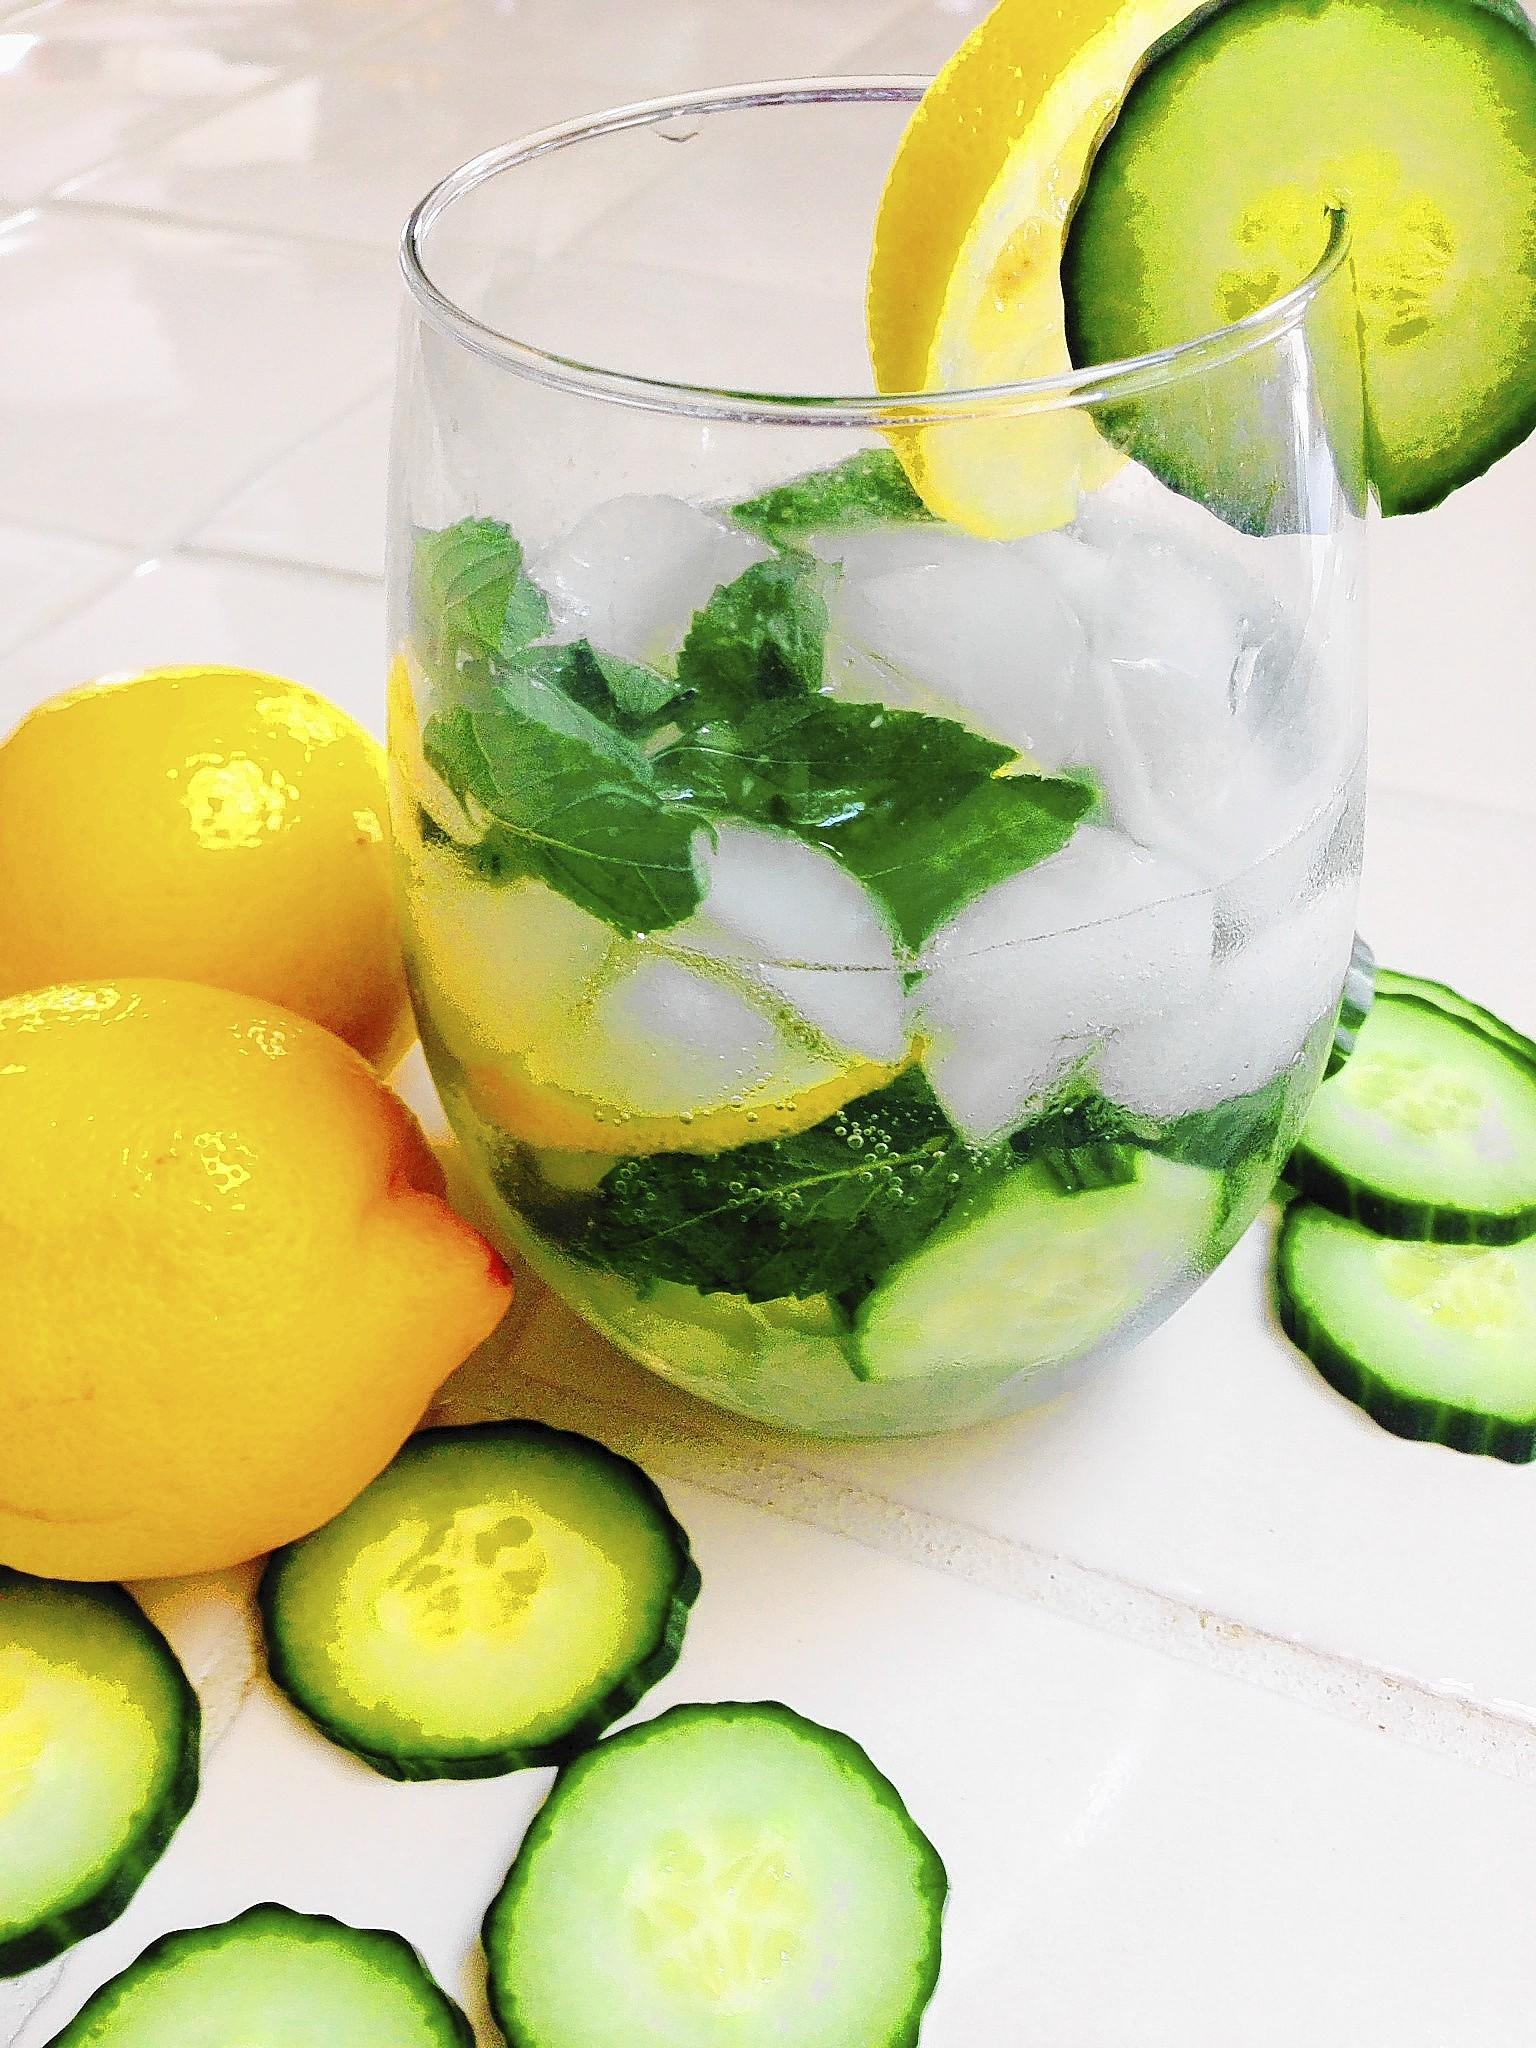 Flavored vodkas can add a potent kick to refreshing libations.